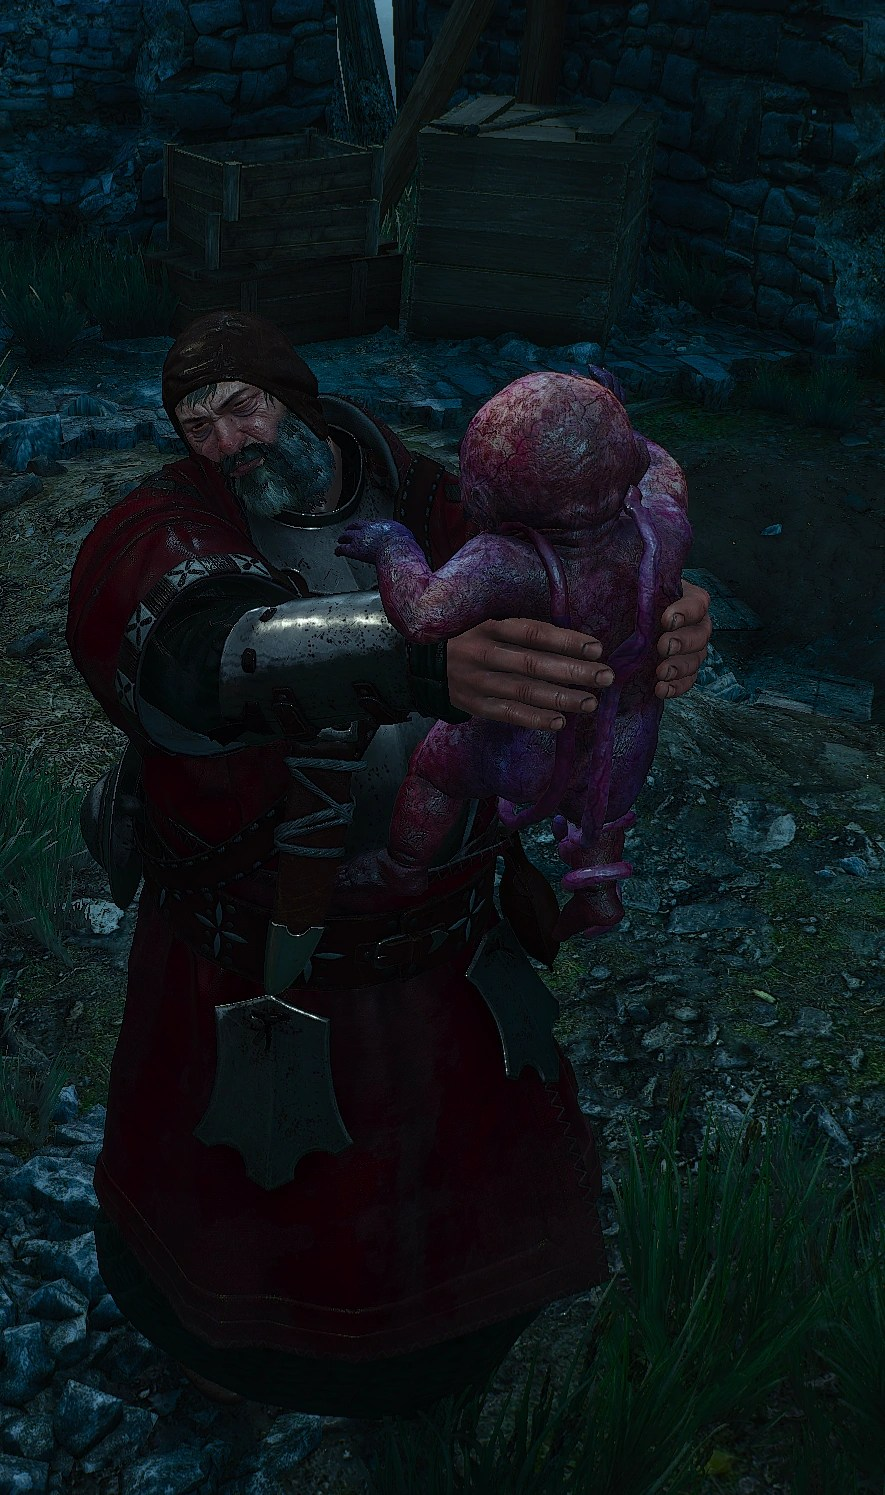 Family Matters Witcher 3 Anna : family, matters, witcher, Family, Matters, Witcher, Fandom